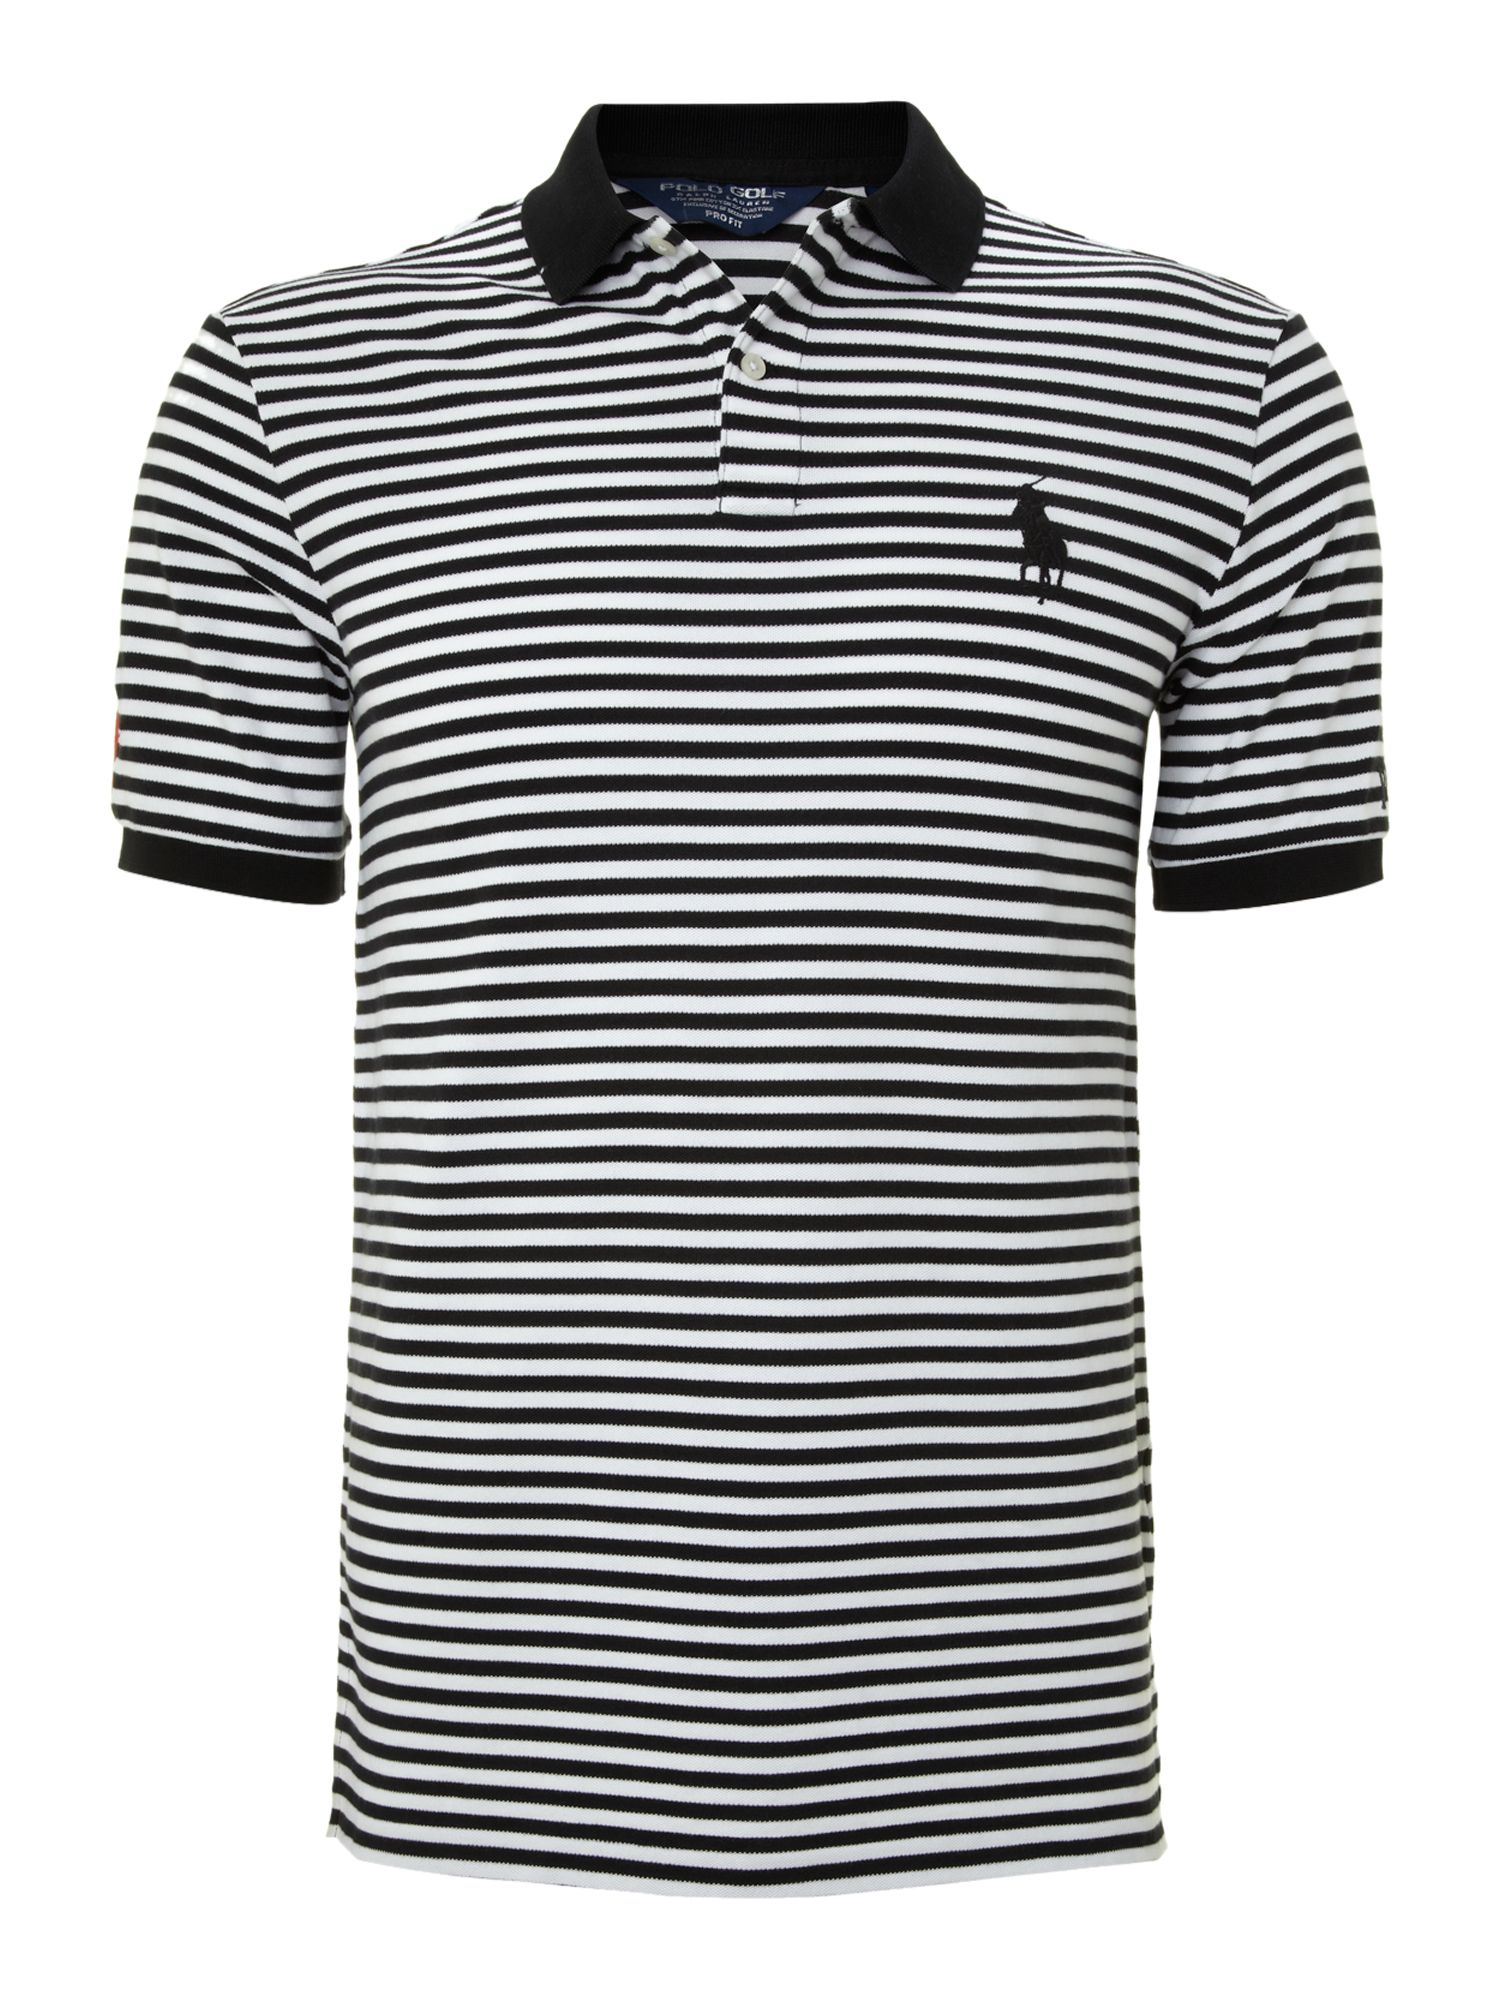 Ralph lauren golf Open Striped Big Pony Polo Shirt in White for Men (Black)